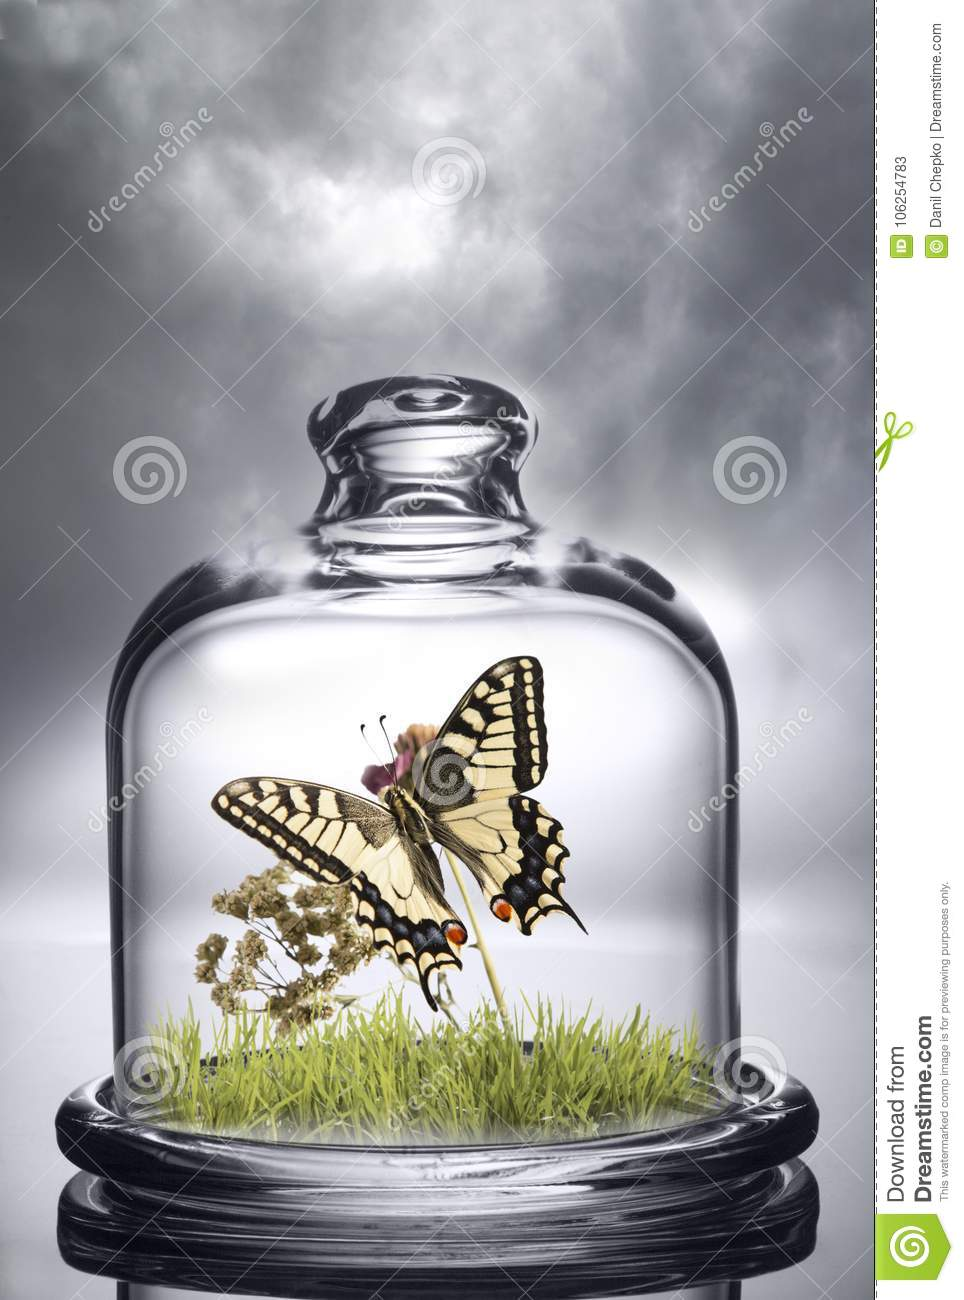 Butterfly under the protection of a glass cap. Environmental